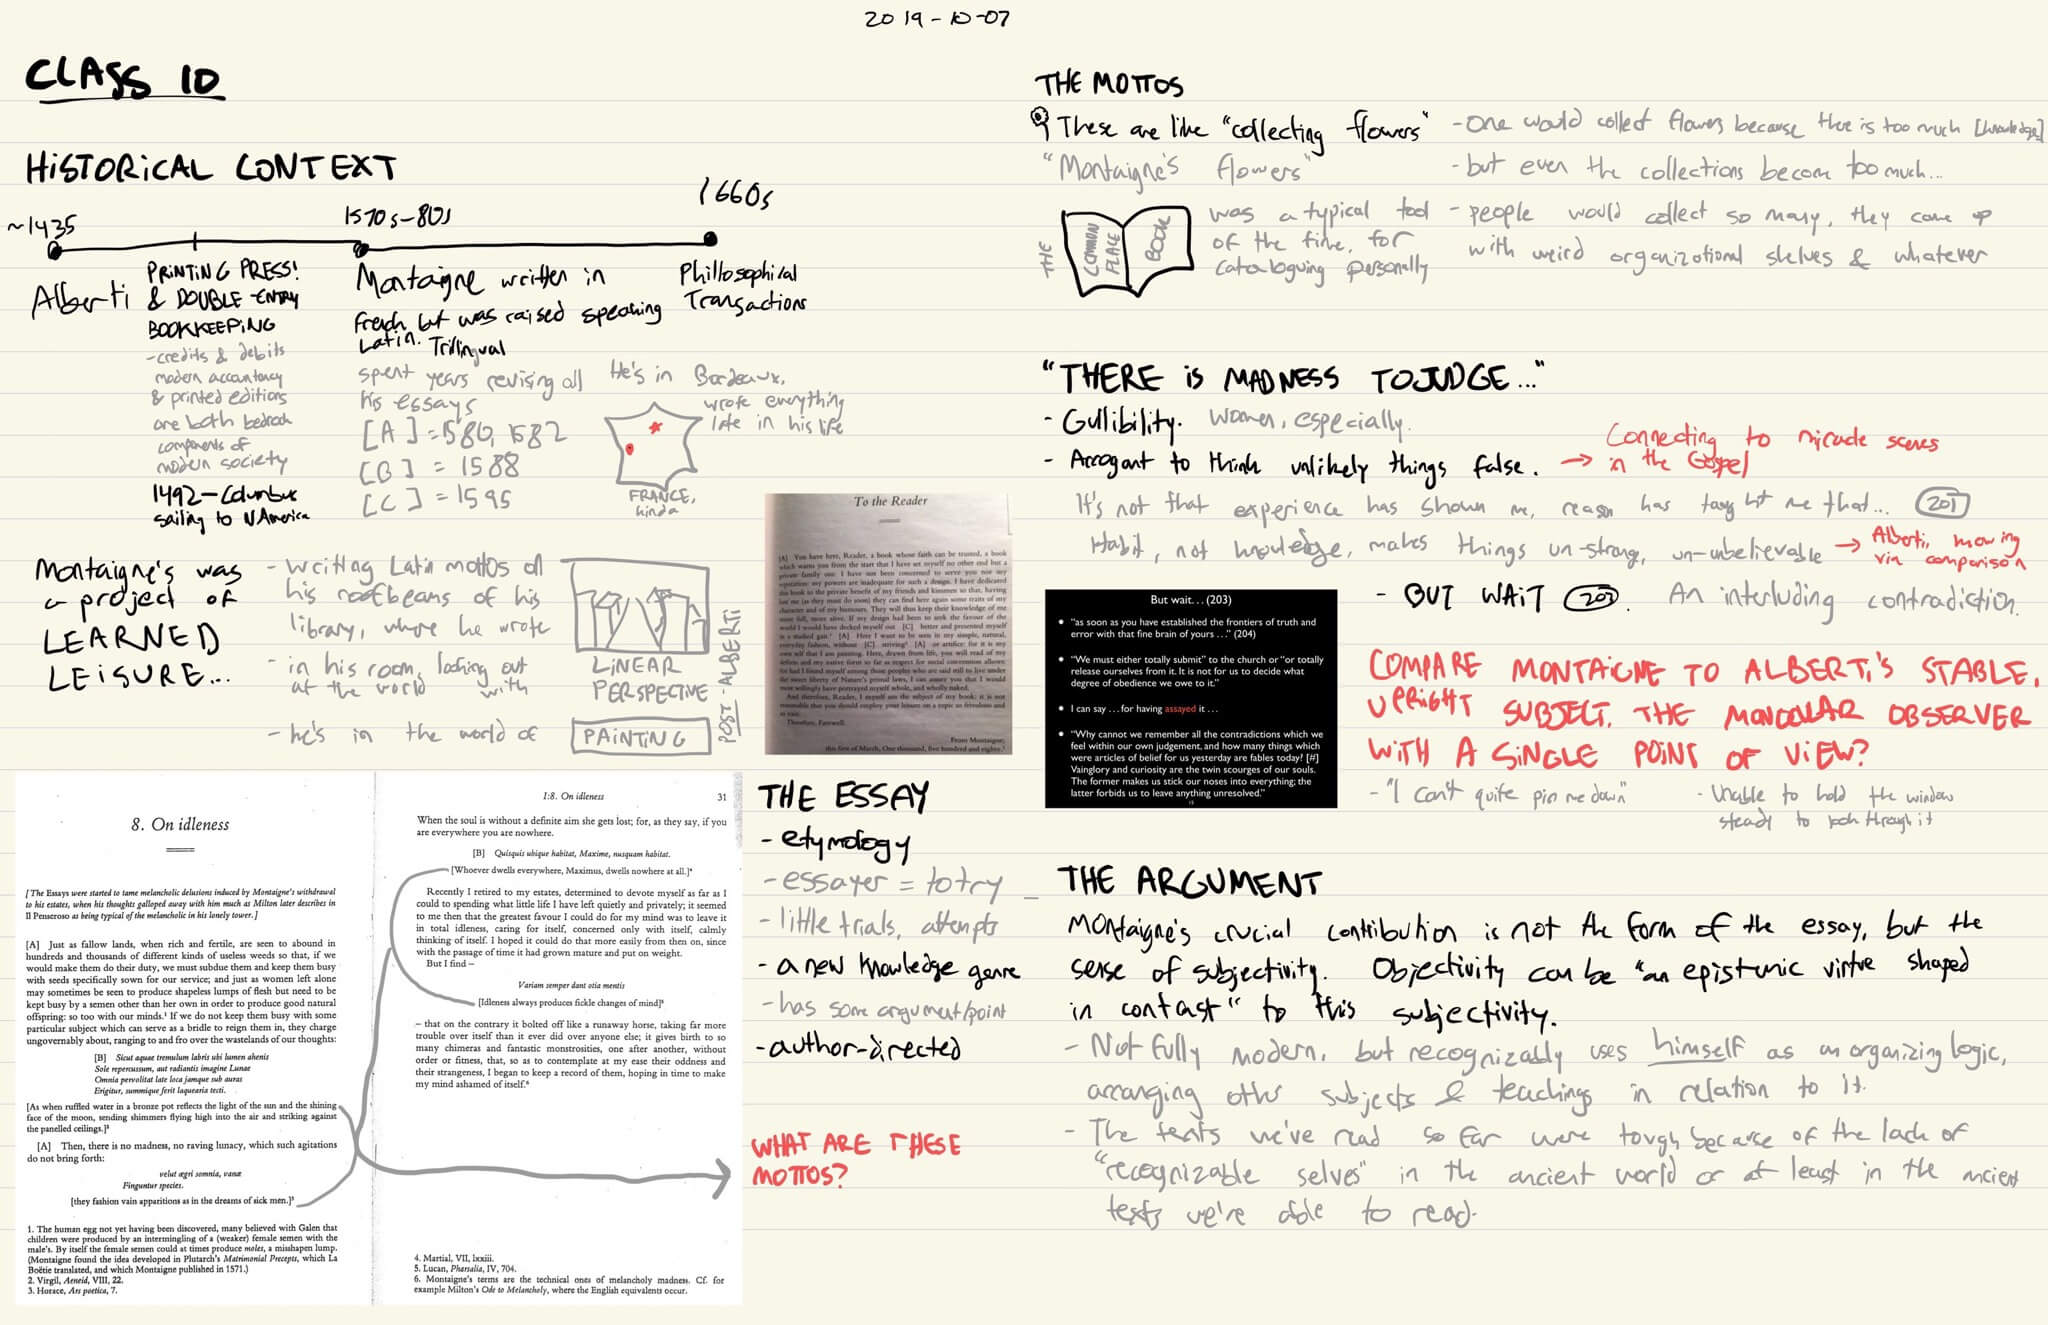 A two-page spread in GoodNotes of my class notes